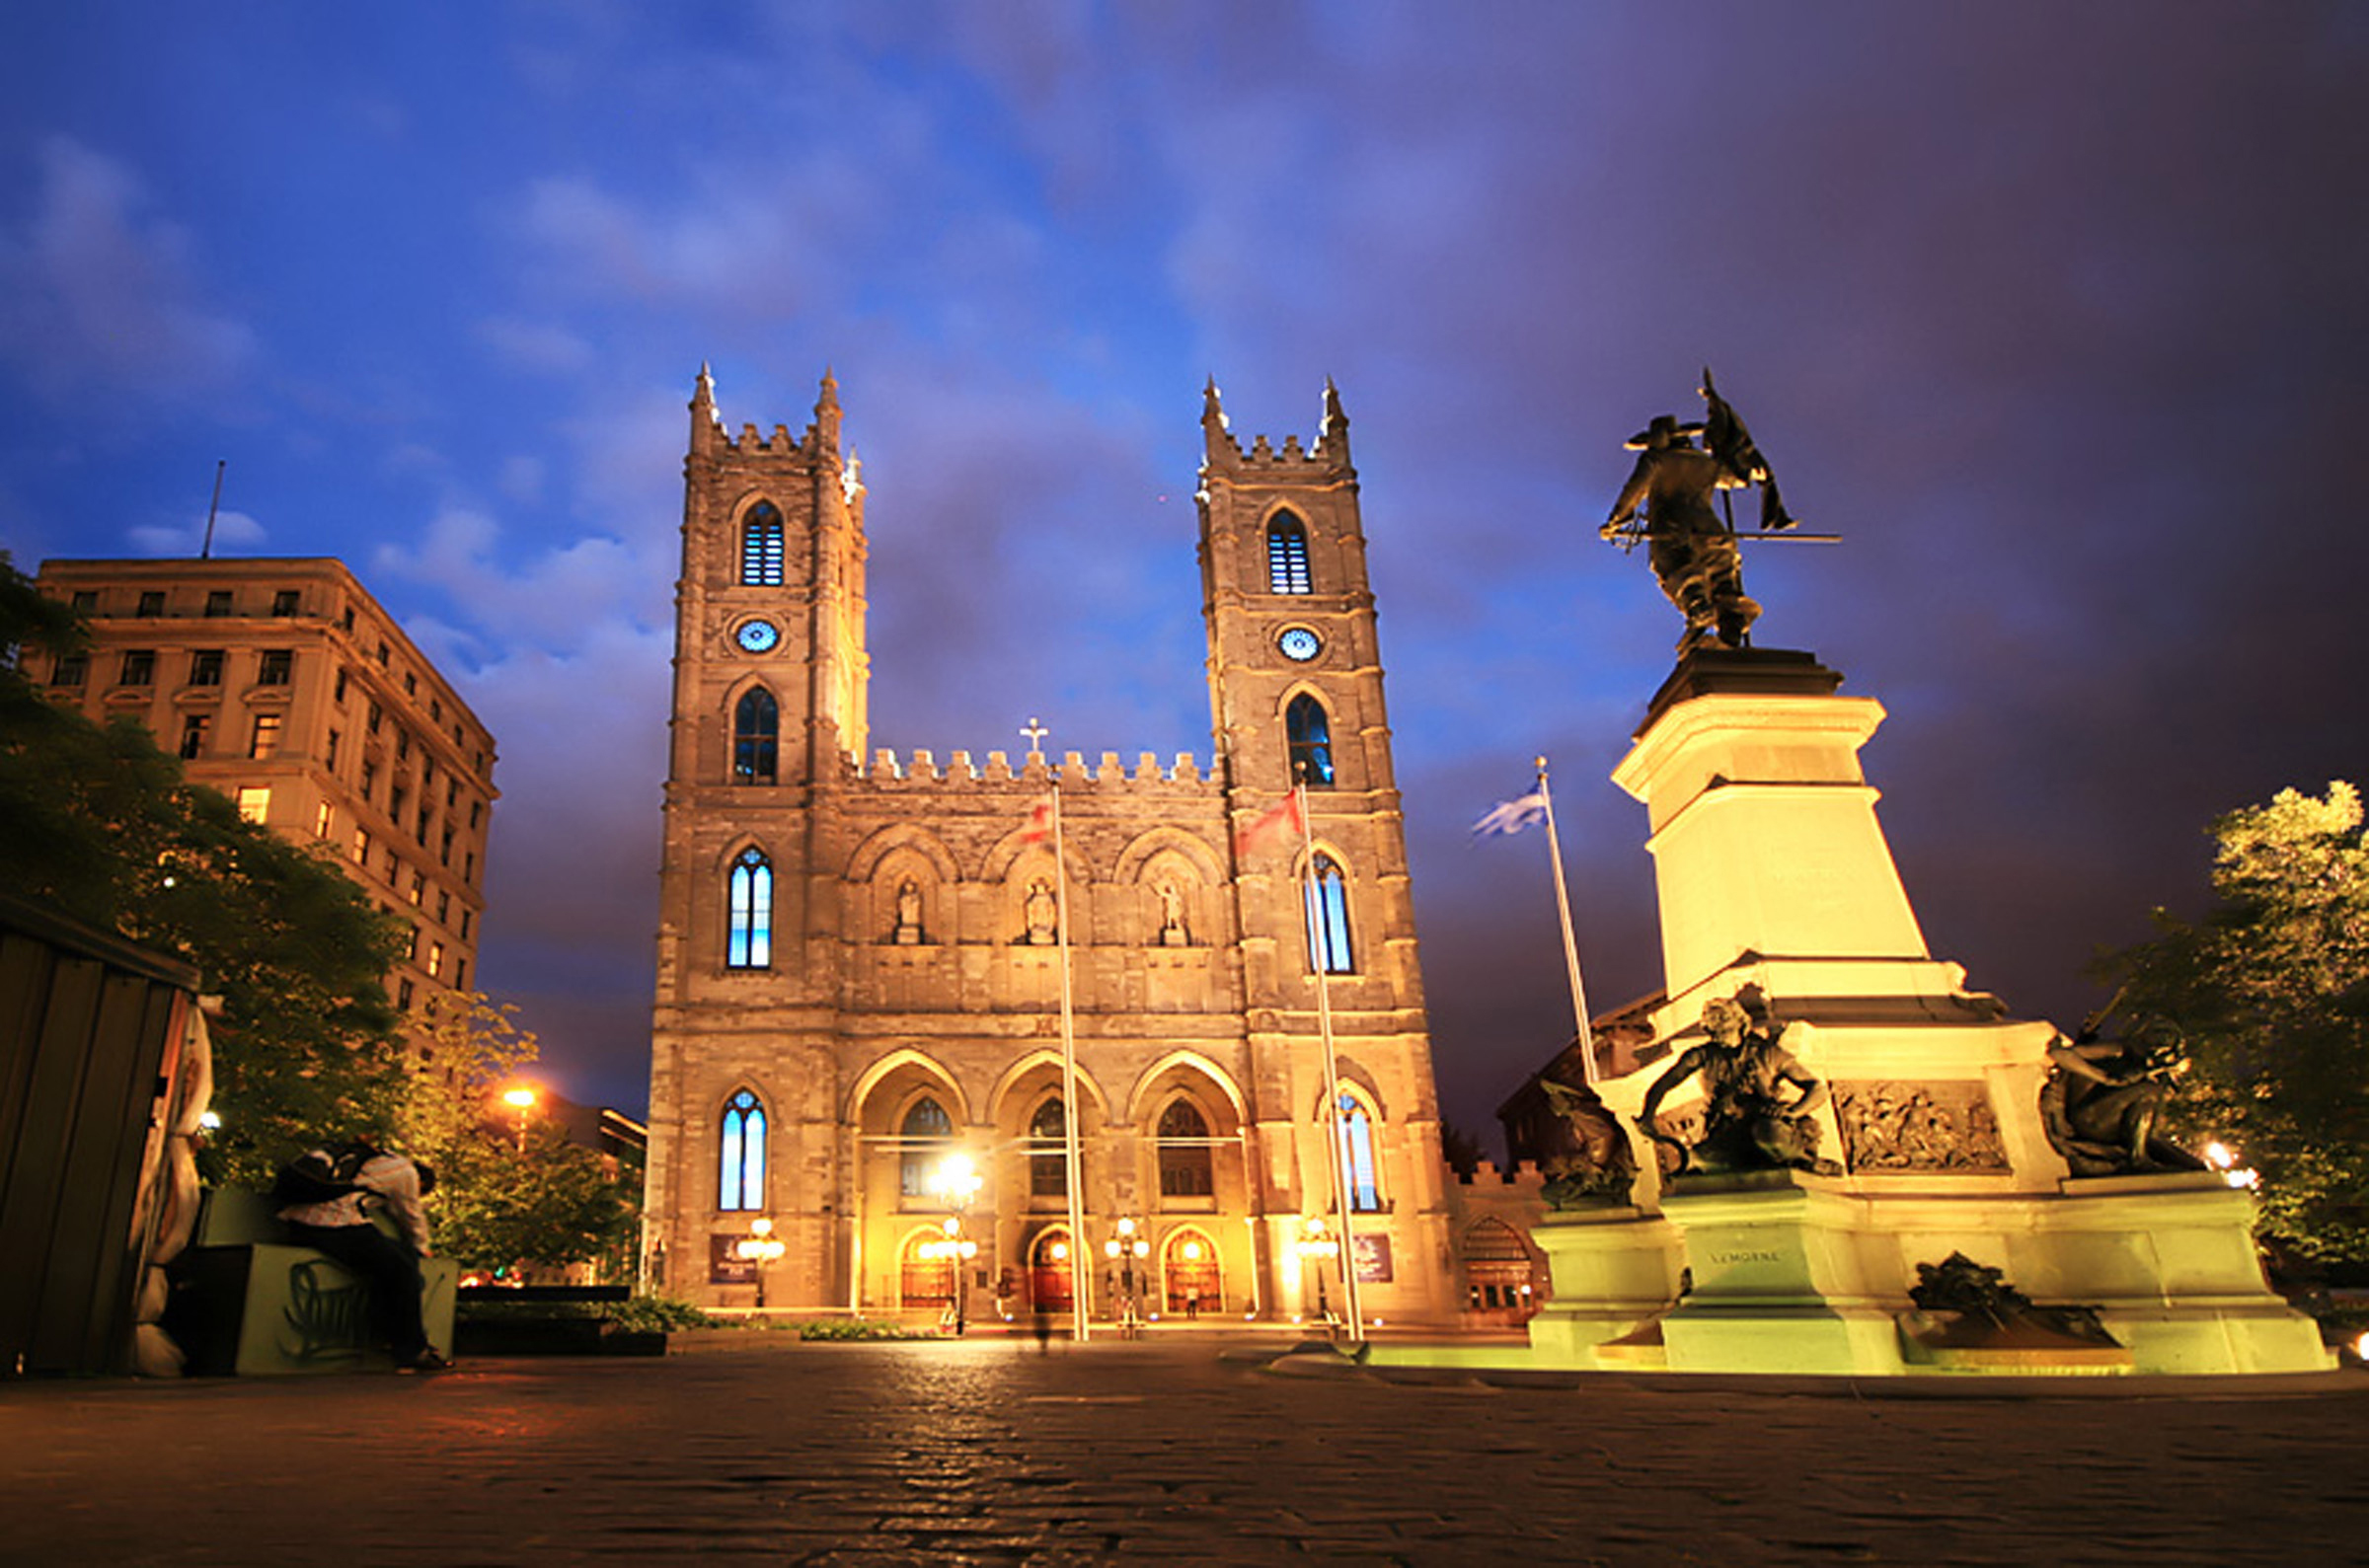 Place d'Armes in Old Montréal, the center of the city's historic icons.  Image by L. Toshio Kishiyama / Getty